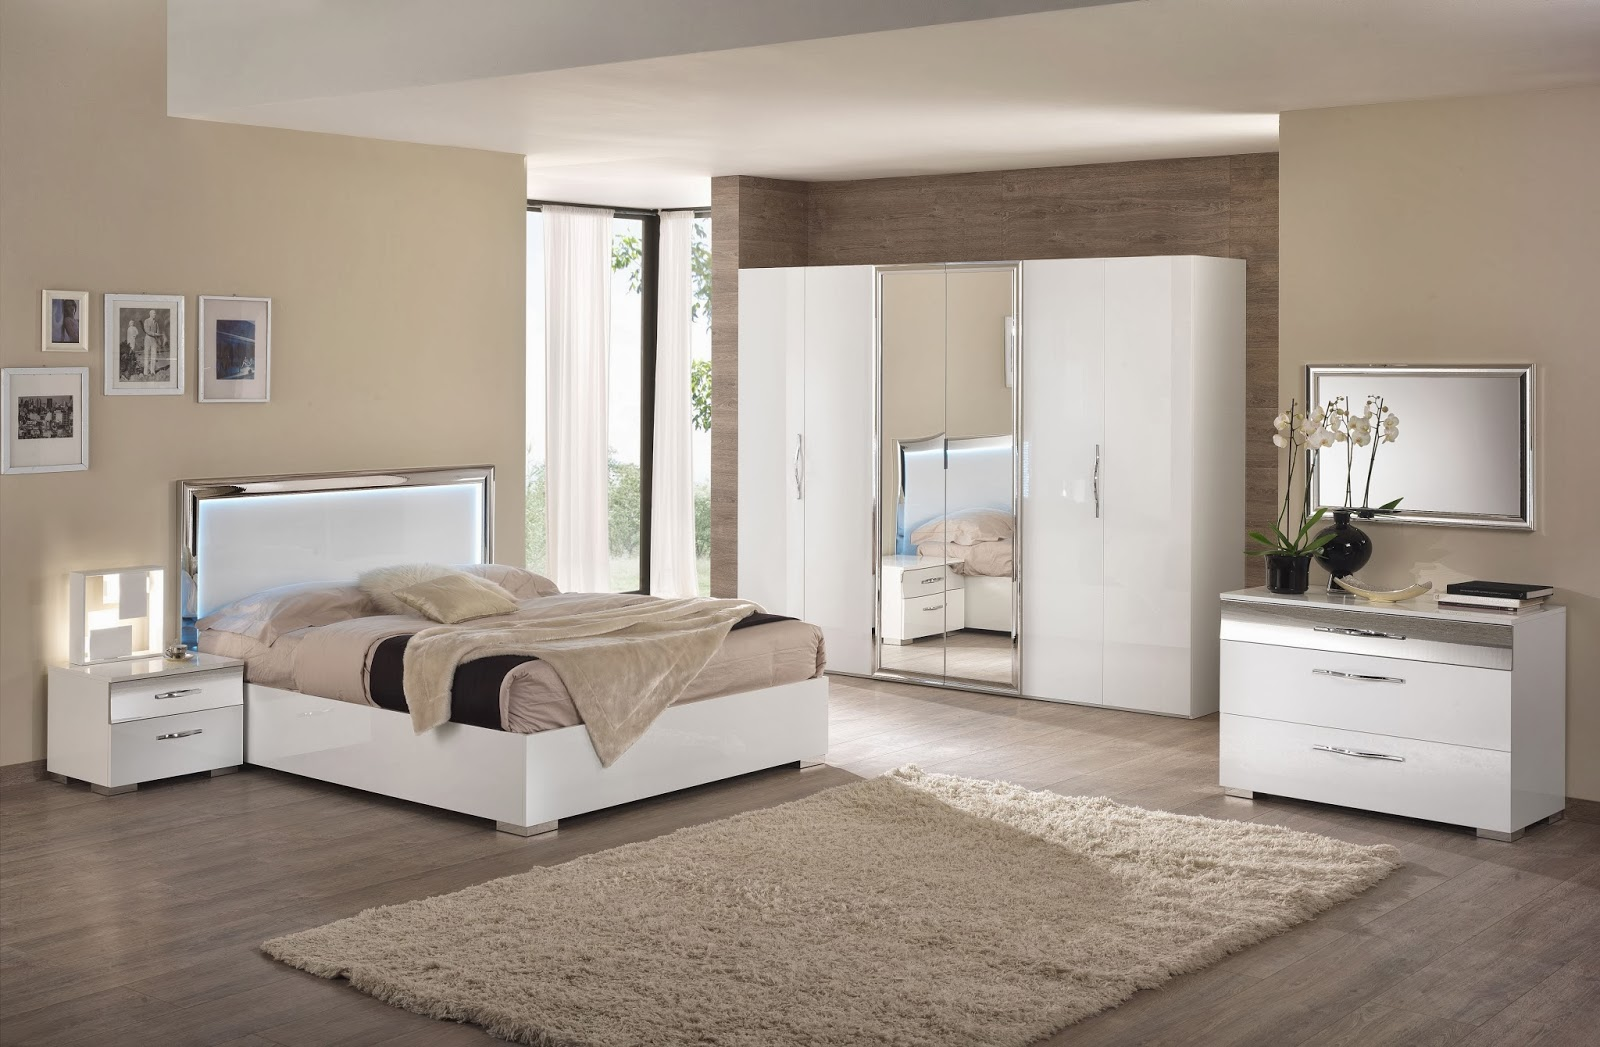 High Gloss Bedroom Furniture Sets MonclerFactoryOutletscom